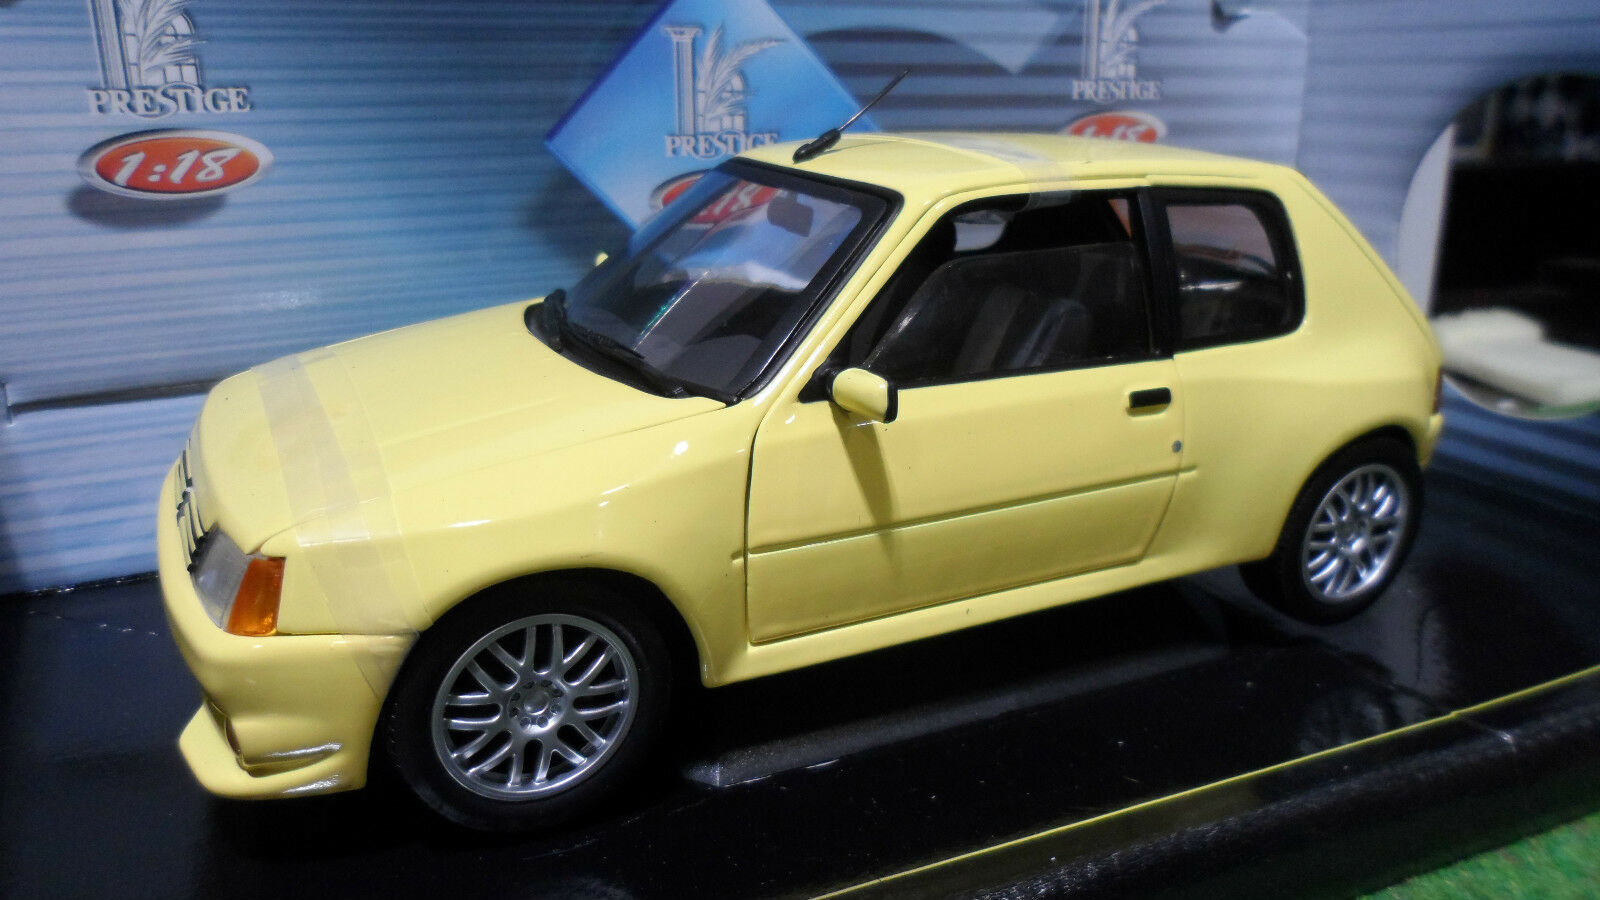 PEUGEOT  205 GTI TUNING 1990 amarillo 1 18 SOLIDO 8154 voiture miniature collection